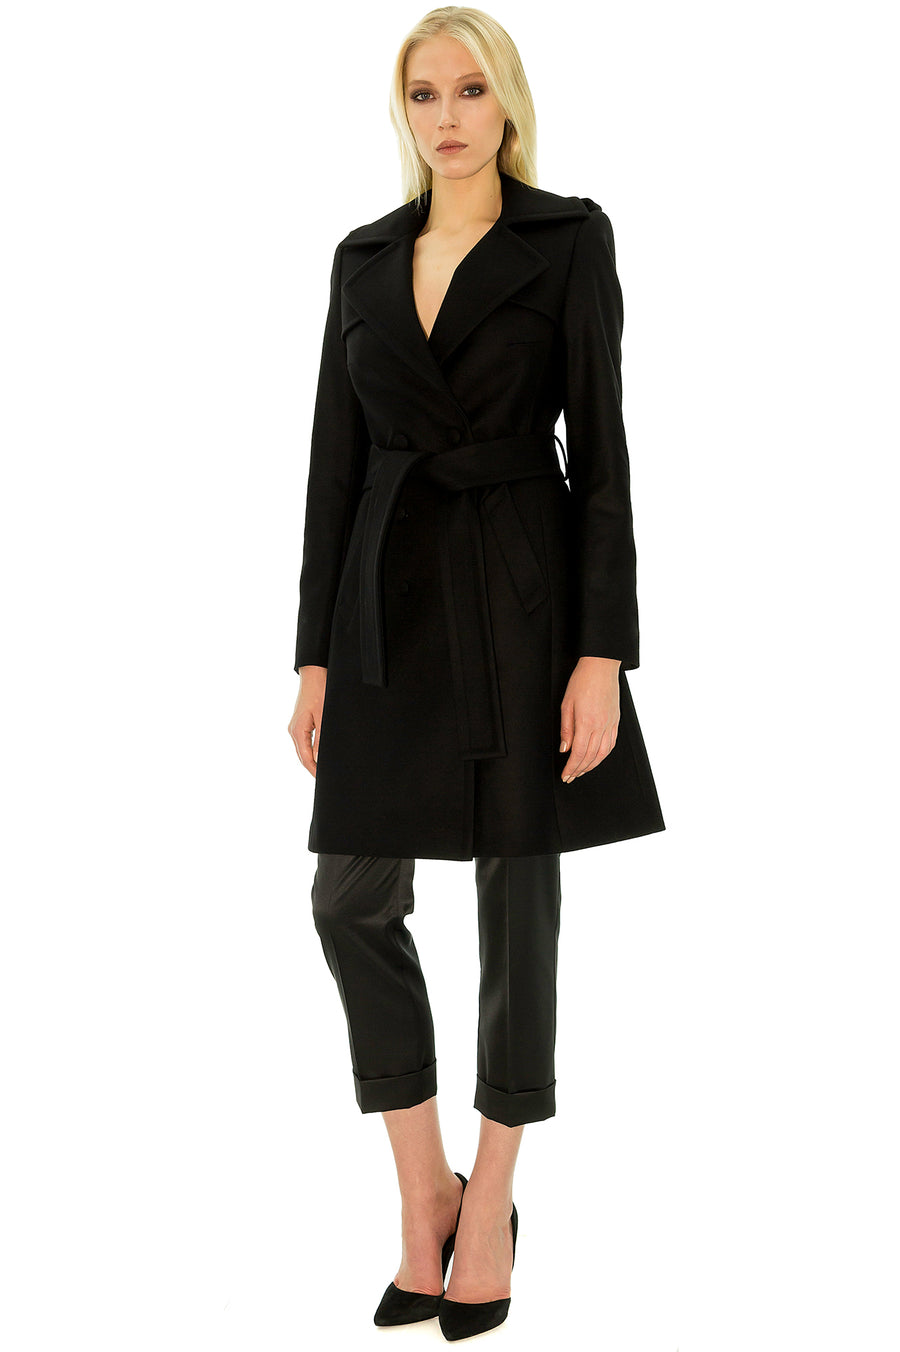 Stefanie Renoma-PERFECT BLACK COAT IN WOOL AND CASHEMERE-Silkarmour-1